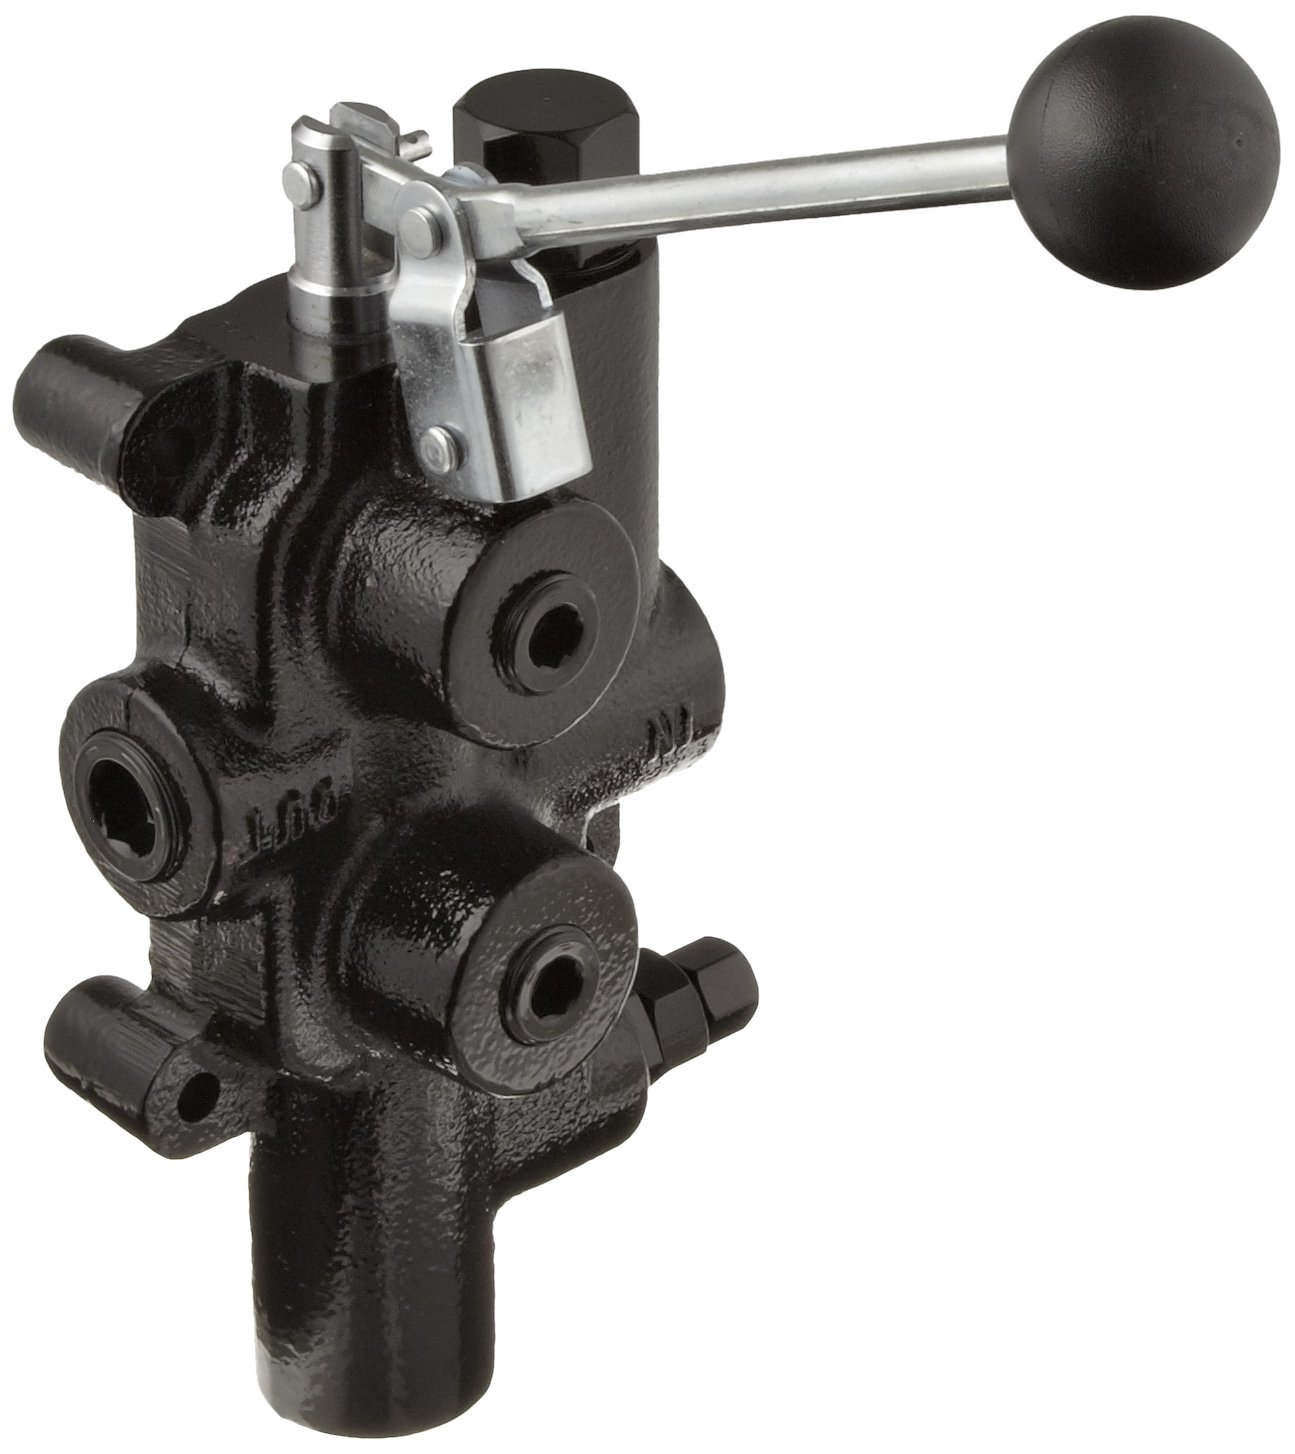 Prince LS-3000-1 Directional Control Valve, Logsplitter, 4 Ways, 3 Positions, Spring Center to Neutral, Cast Iron, 2750 psi, Lever Handle, 25 gpm, In/Out: 3/4'' NPTF, Work: 1/2'' NPTF by Prince Manufacturing